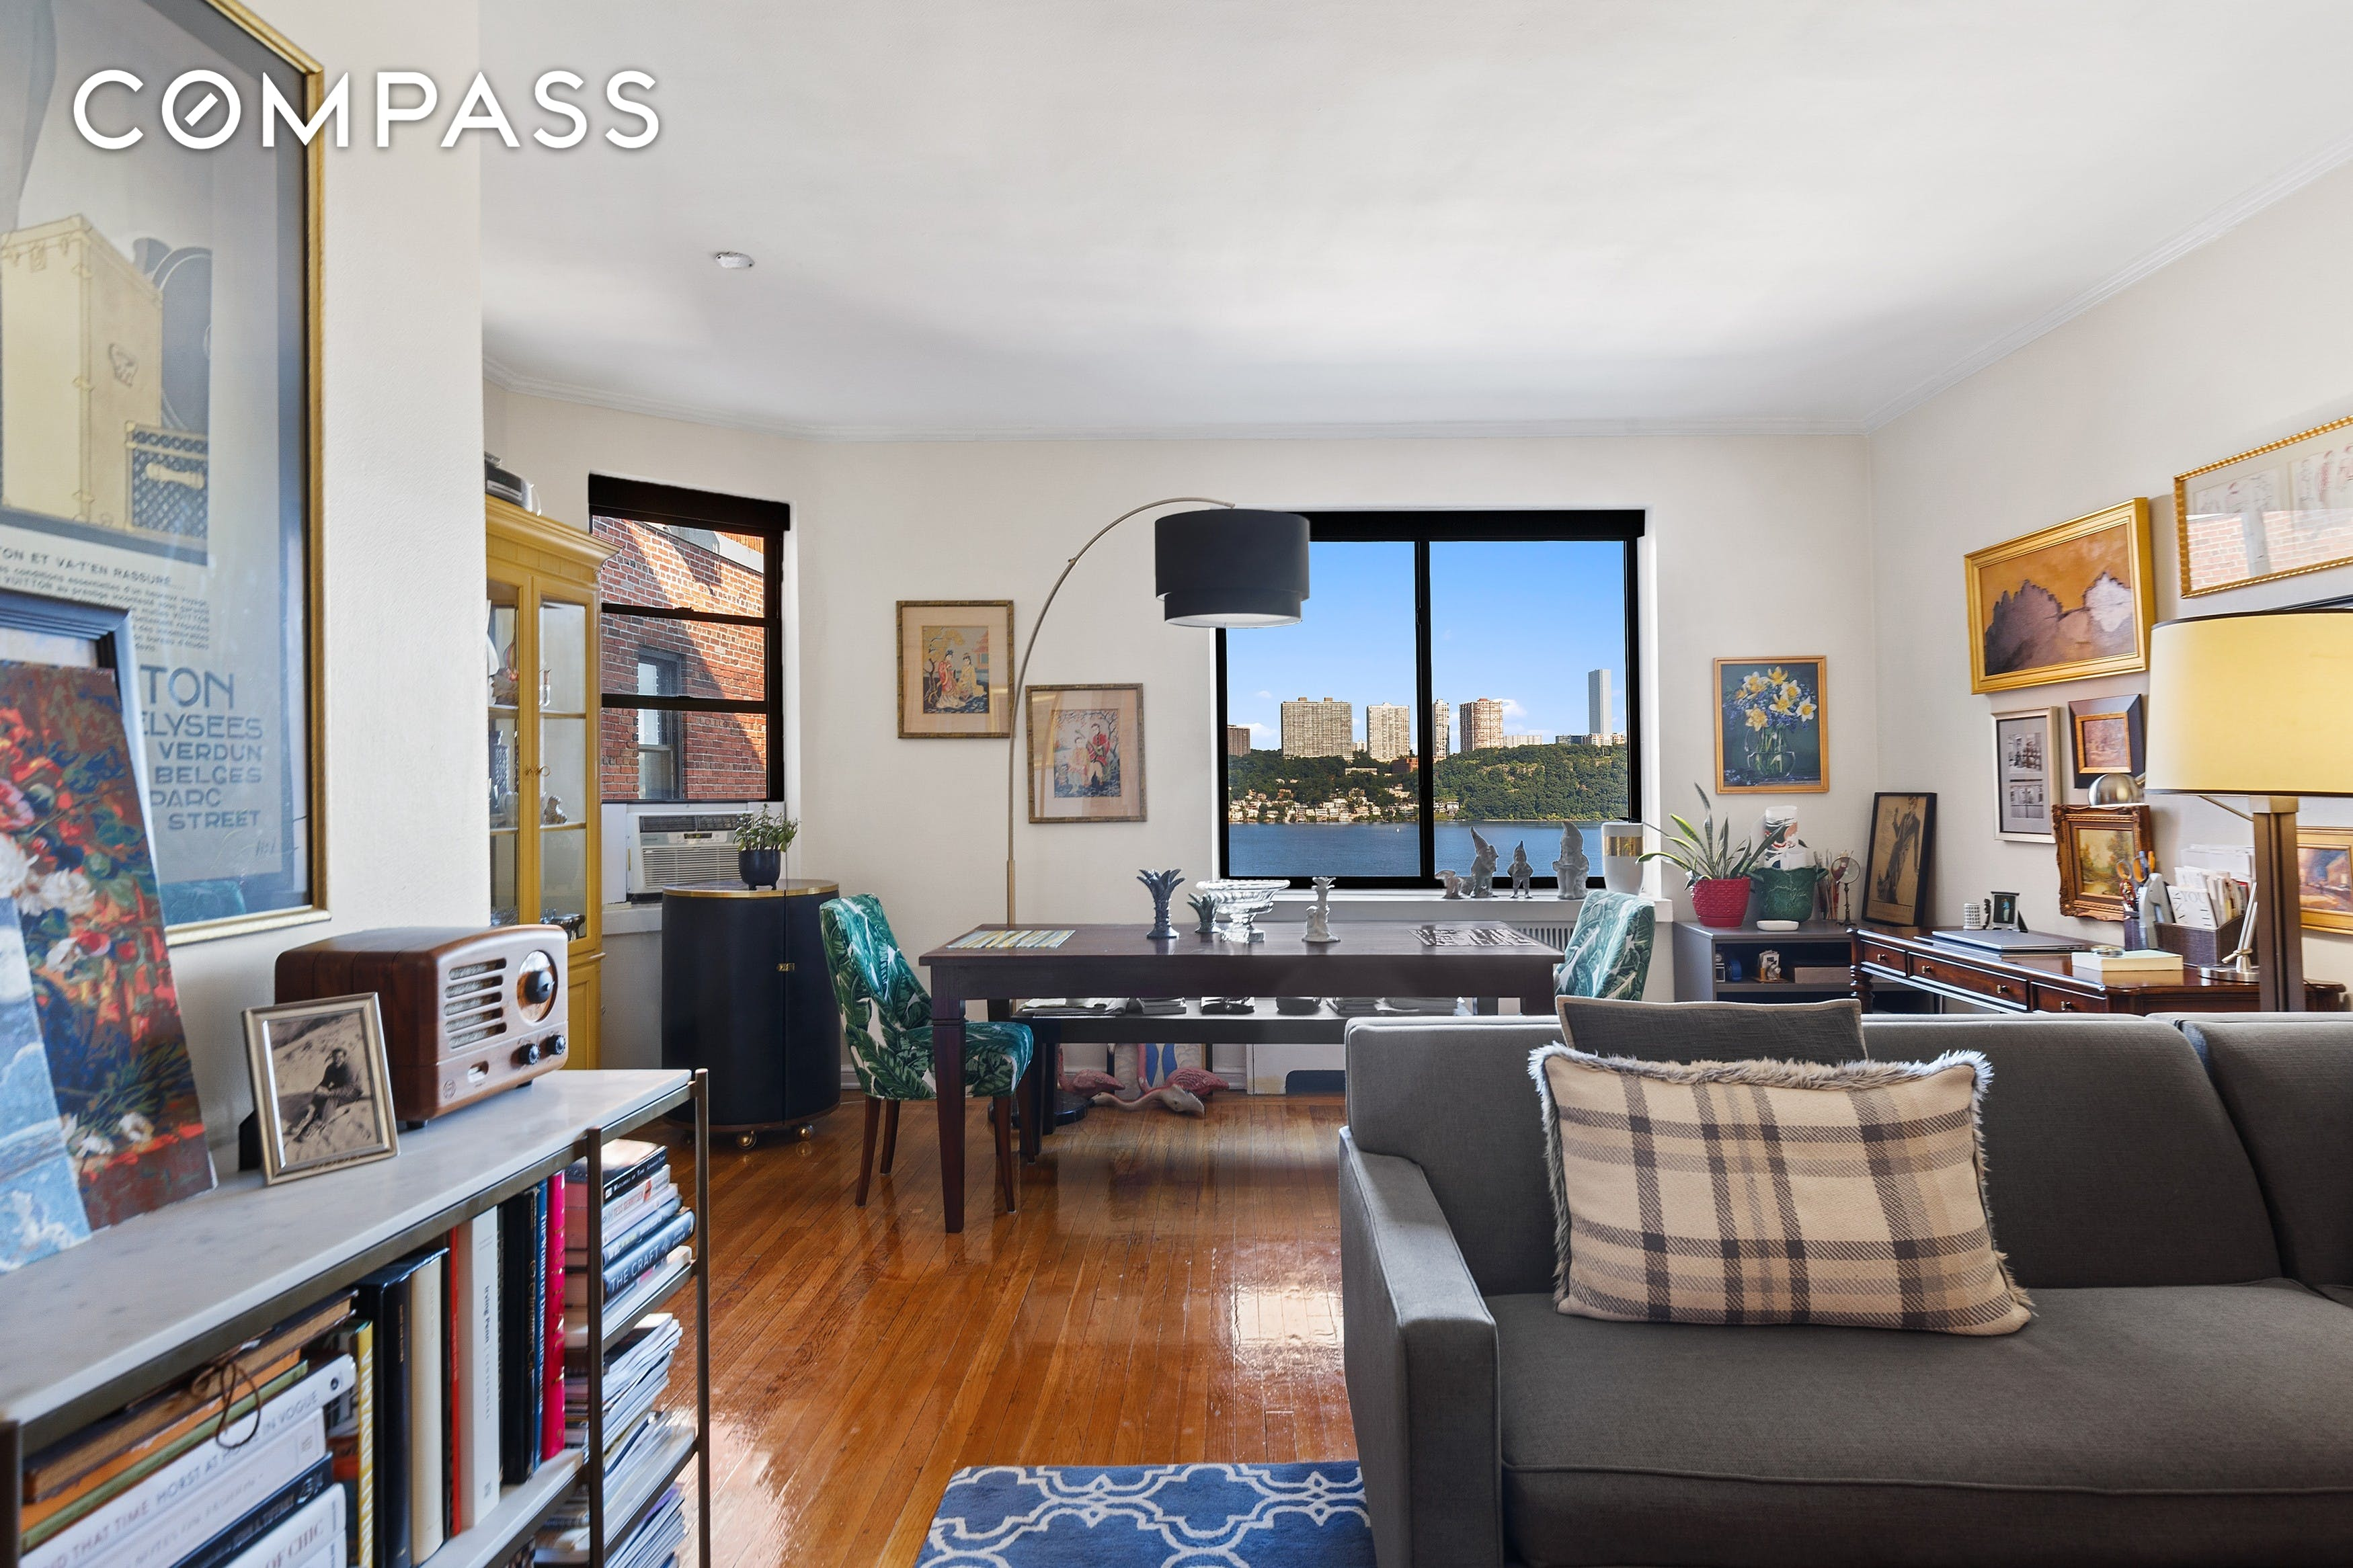 HIGH FLOOR ONE BEDROOM OVERLOOKING THE HUDSON RIVER  Space, light and open views. this large one bedroom in the esteemed River Arts has it all. Upon entering the gracious foyer, you immediately know this home is special. With direct views of the Hudson River and GWB from the living space and tranquil leafy garden views from the bedroom, this rare find offers the best of all scenarios, invigorating morning sunshine and captivating afternoon sunsets. If you long to have sophisticated dinner parties with an equally fabulous backdrop, this L-shaped living/dining space fits the bill. The king-sized bedroom is nicely removed from this entertaining/workspace, separated by a bank of 4 over-sized closets and extra-wide hallway which is the perfect place to add a Washer/Dryer or additional storage. The kitchen and bathroom offer you an opportunity to put your personal stamp on your perfect home, as evidenced by the low asking price.    Welcome to the River Arts, the premiere full-service DM building in the Audubon Triangle of Washington Heights. This divinely situated building overlooking the Hudson River is beautifully landscaped and attended by a full-time doorman. Amenities include indoor parking for only $230 per month, a gym ($50/year), bike storage ($25/bike/year), 24/7 laundry room, storage cages, a resident Super plus 3 porters, an events/party room and more. The building allows W/D in the units and one dog per shareholder apartment (with certain breed restrictions). Moments away from the #1 train plus easy access to the Henry Hudson, the GWB and all major Metropolitan roadways. This vibrant neighborhood offers wonderful local eateries, markets, coffee houses and after work hangs. Outdoor enthusiasts enjoy direct and easy access to the Hudson River Greenway, a beautiful, dedicated bikeway along the river plus Fort Washington Park just at the bottom of the hill which has been recently refurbished with volleyball courts, soccer fields, modern playgrounds, handball, tenn